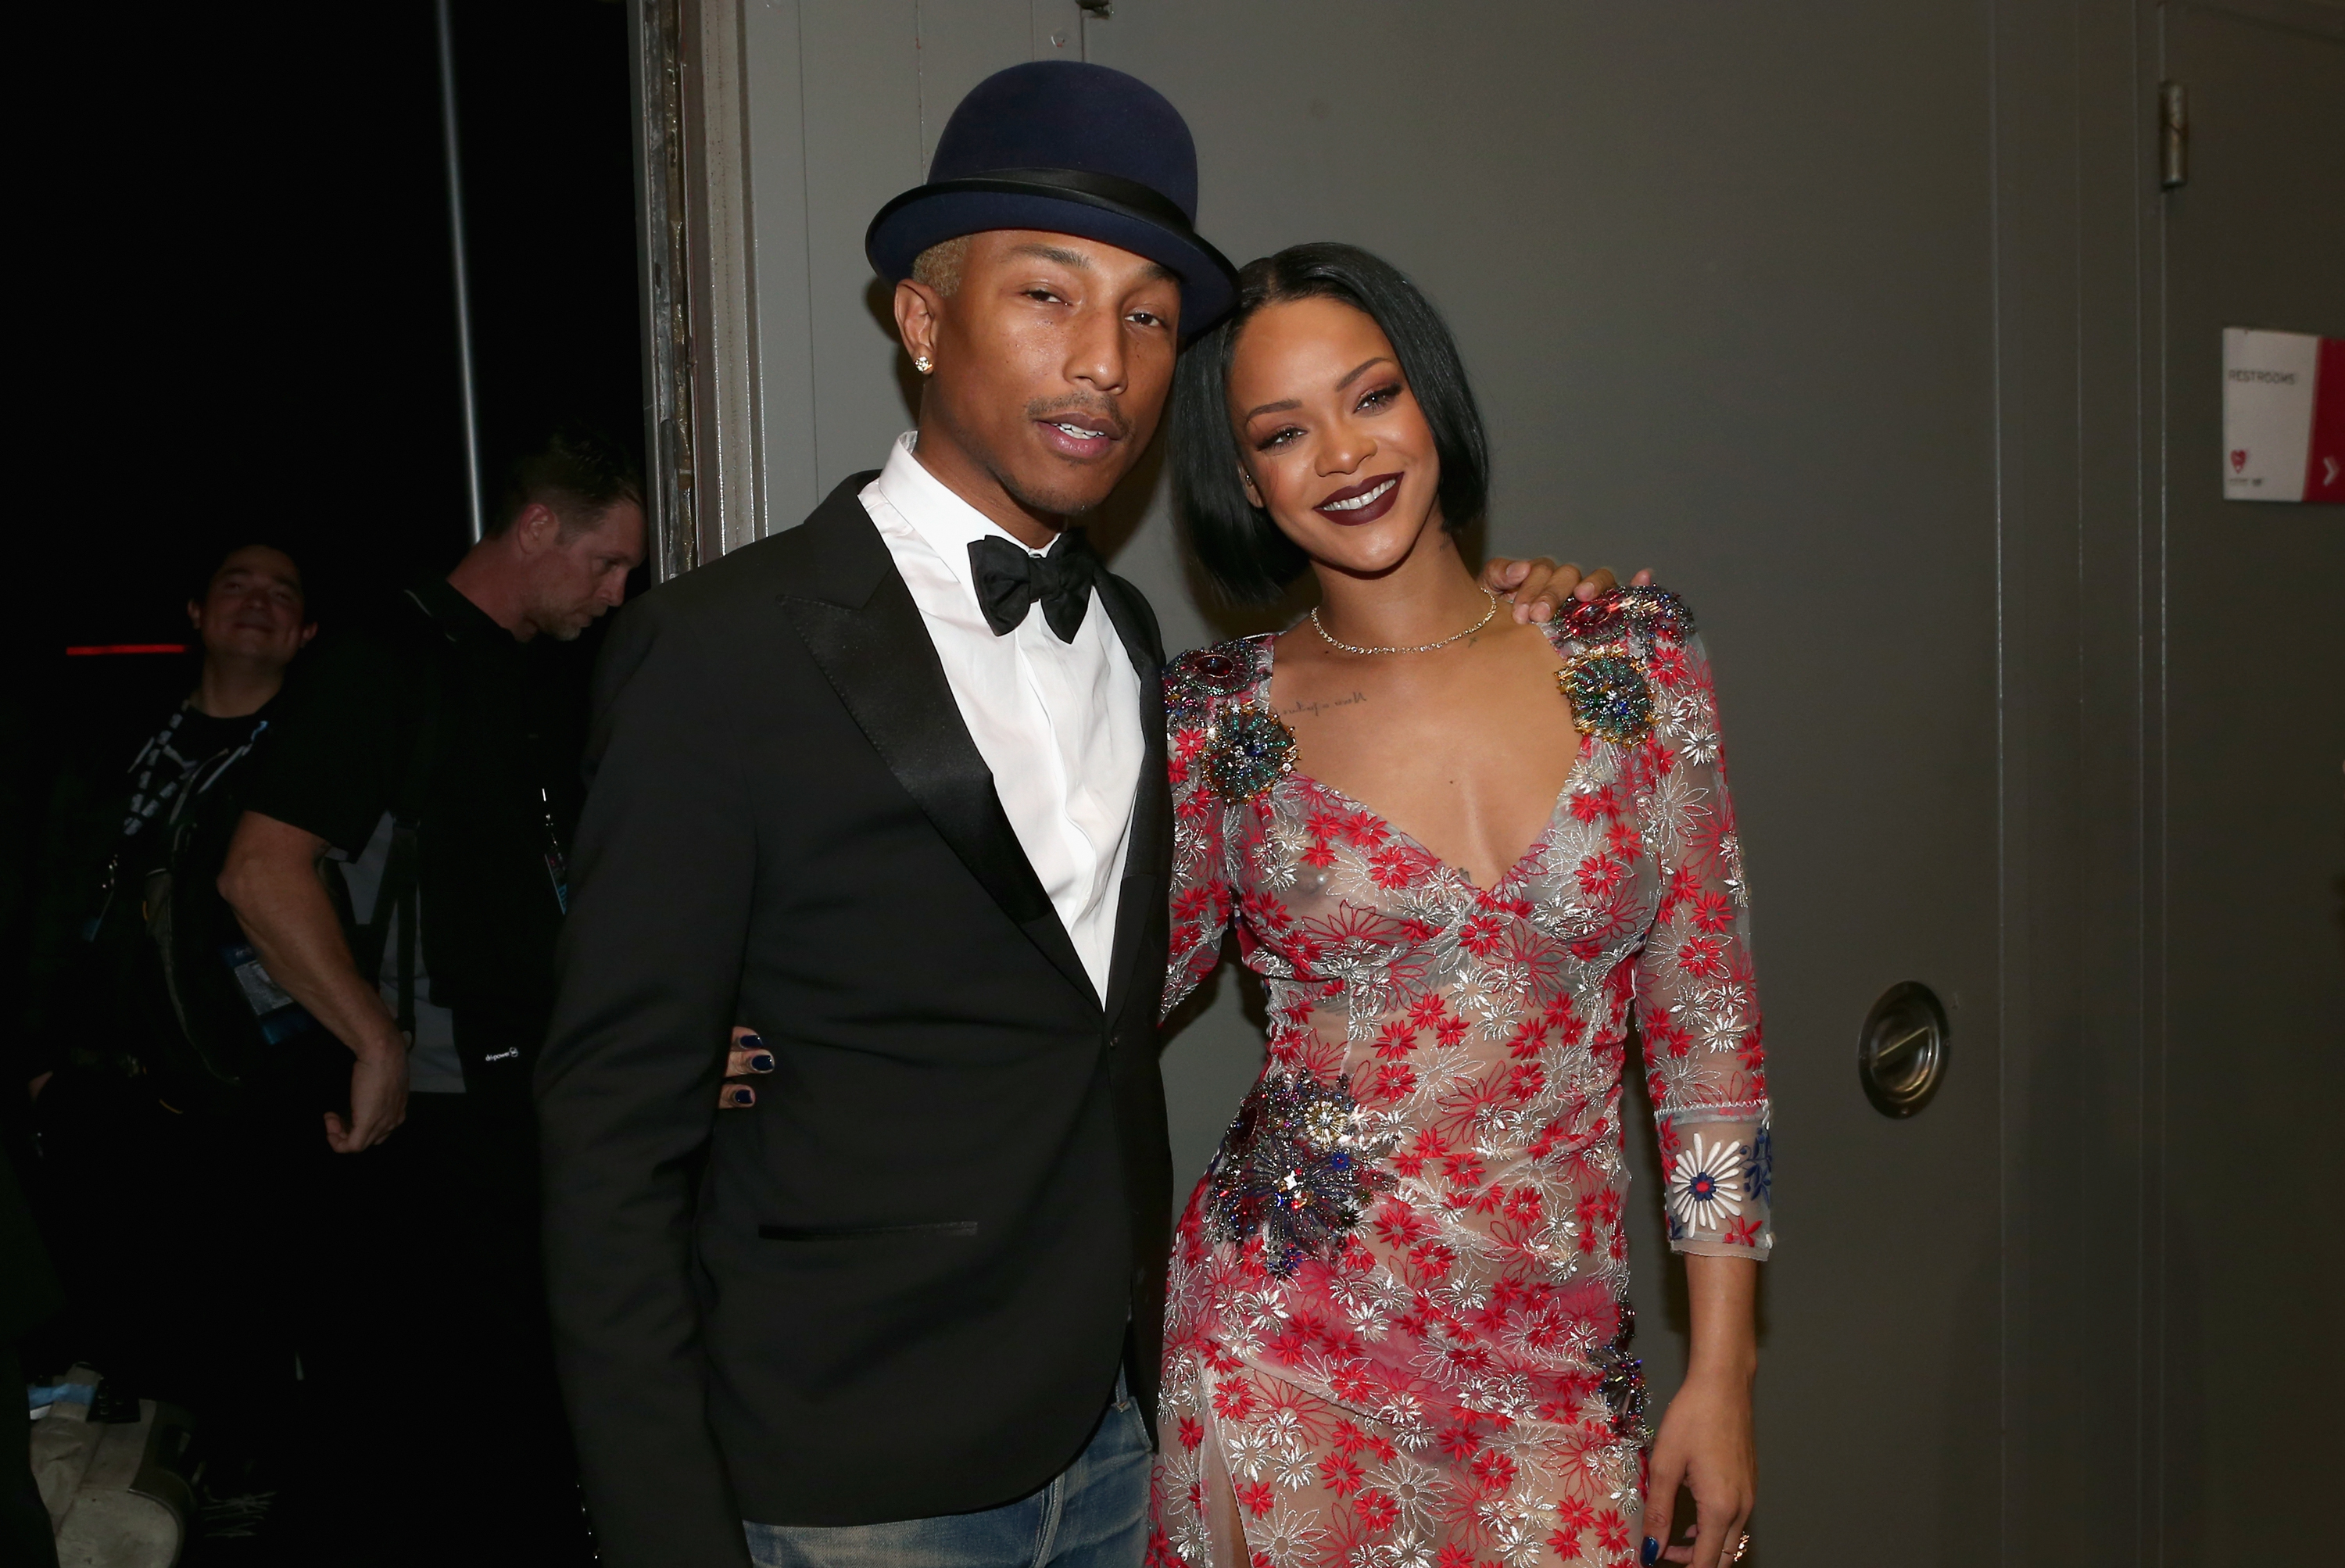 Pharrell Williams and Rihanna